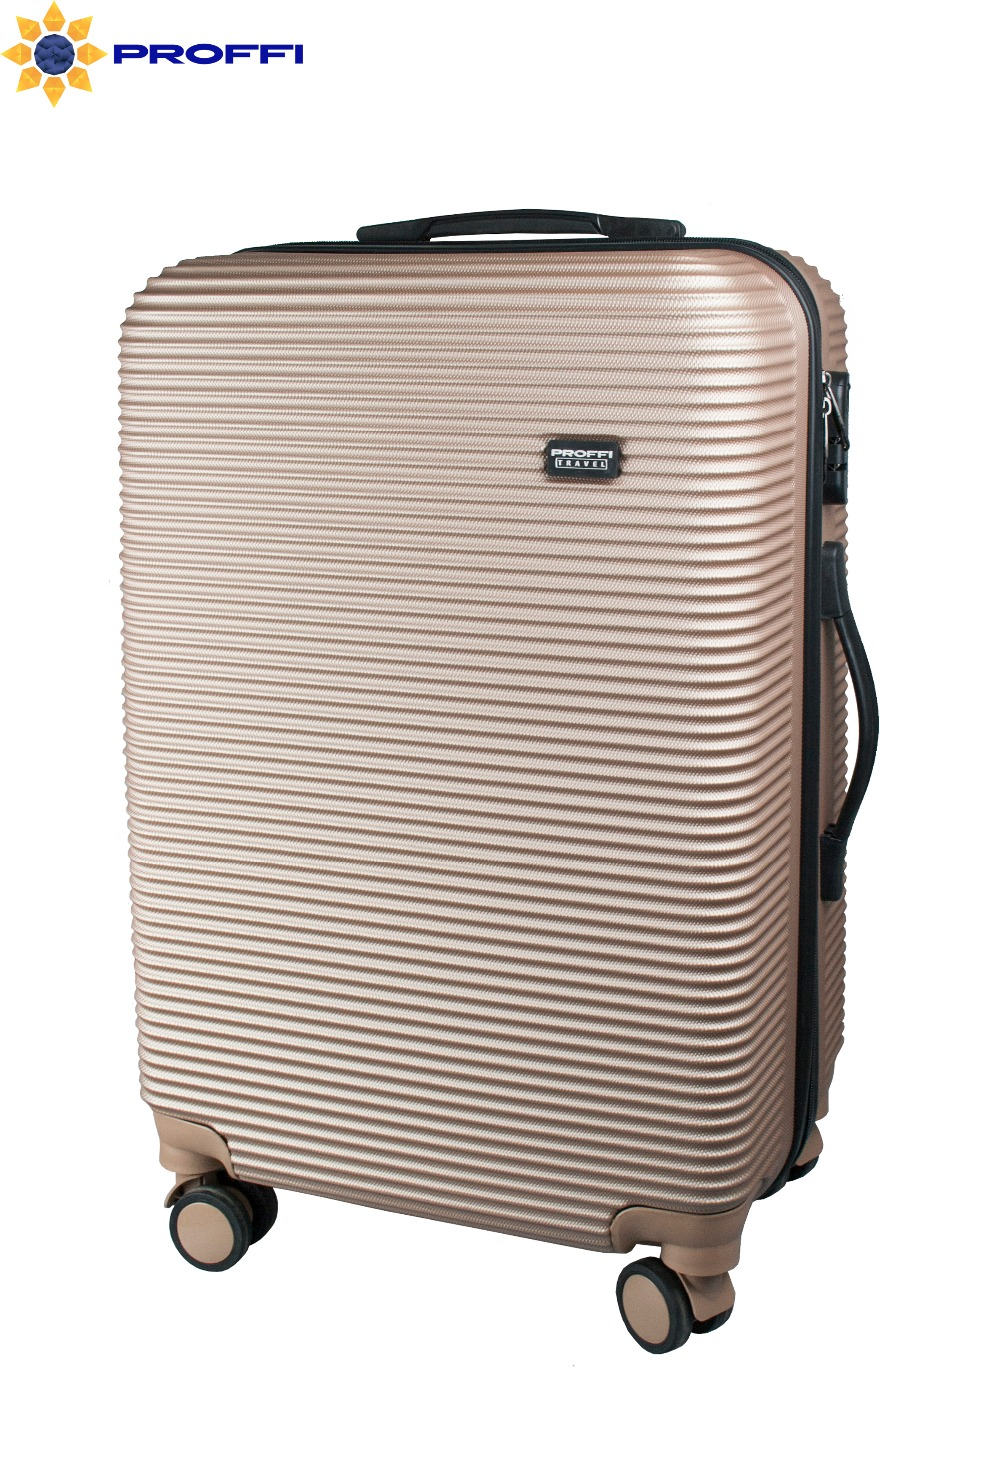 Plastic suitcase PROFFI TRAVEL PH8859beige, beige, M, with built-in scales, on wheels